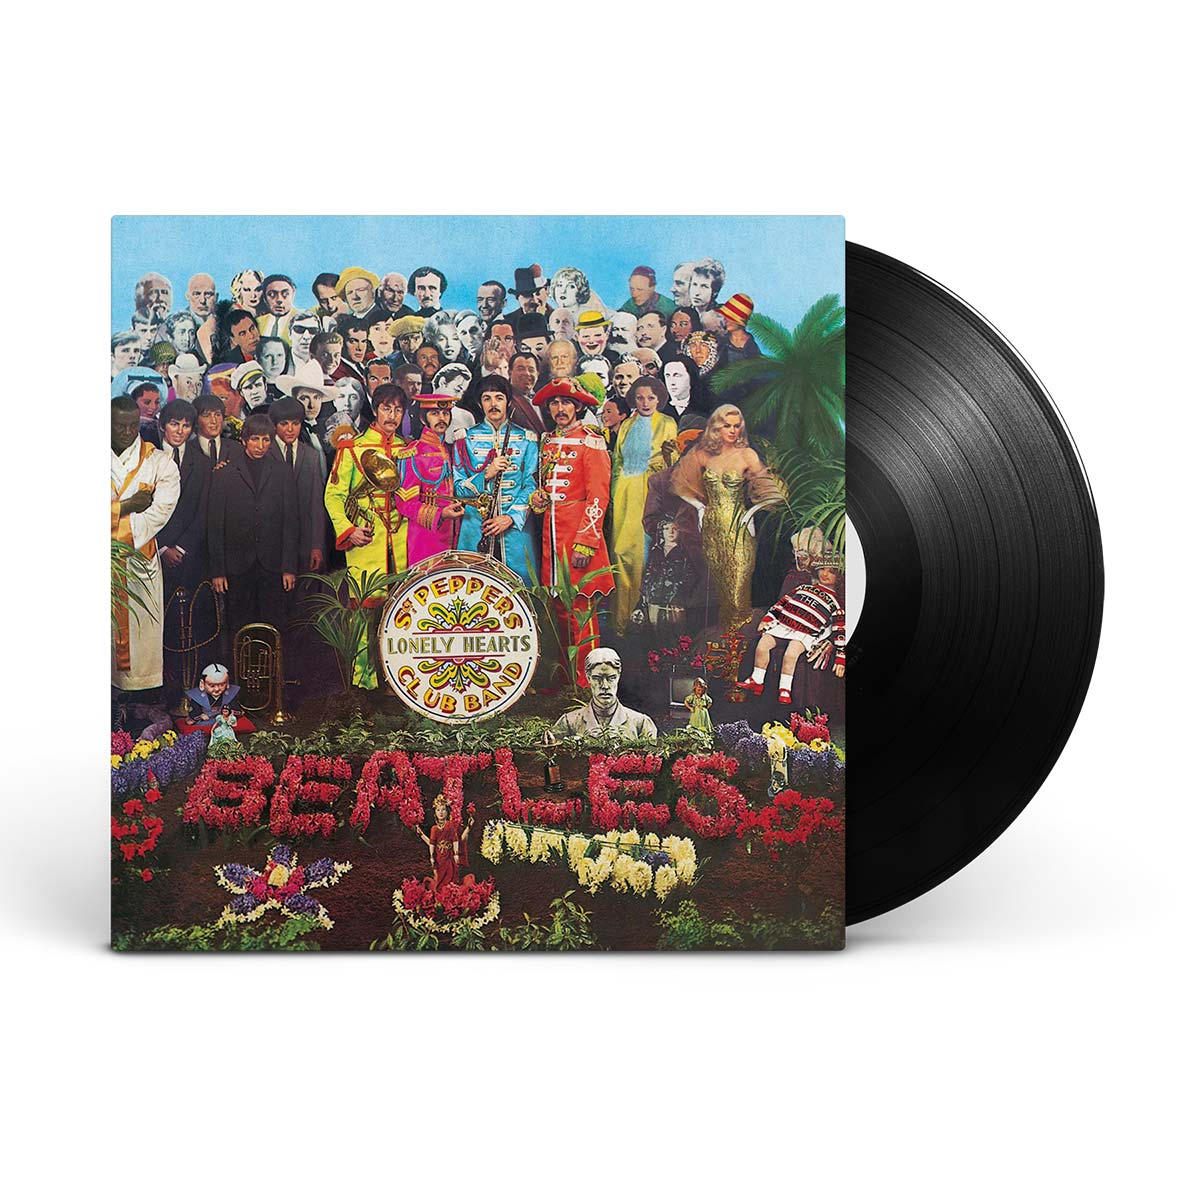 LP IMPORTADO The Beatles Sgt. Pepper's Lonely Hearts Club Band